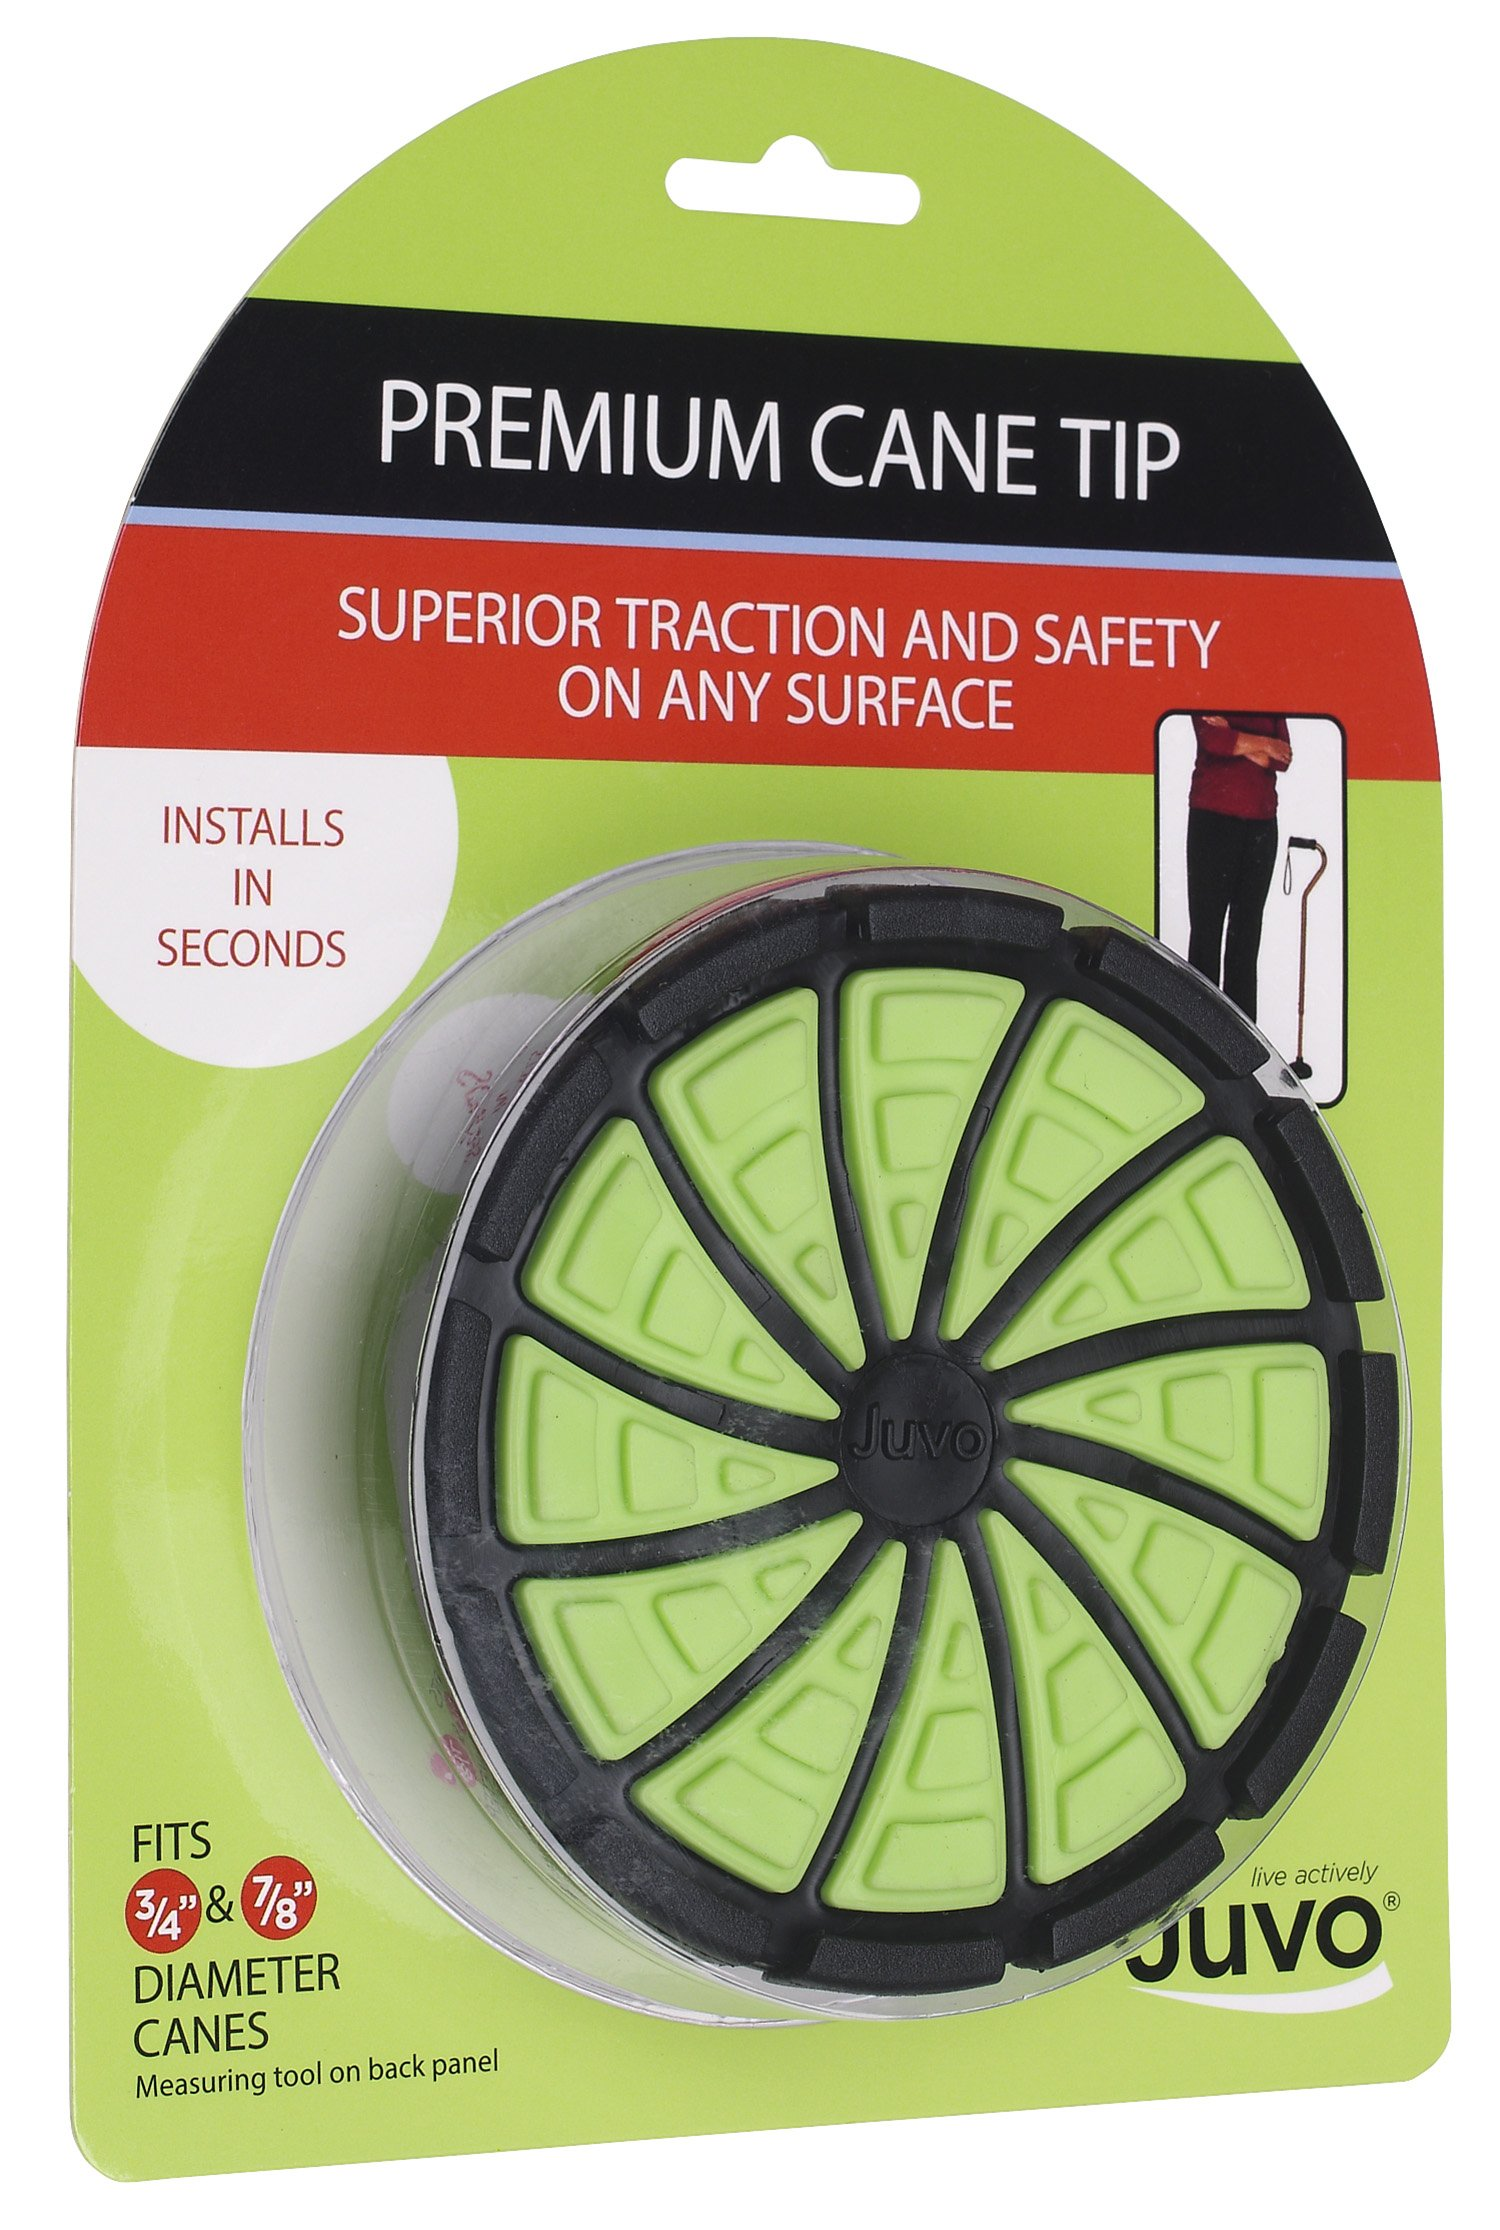 "Juvo Products Premium Cane Tip with Extra Wide Base, Fits 3/4"" or 7/8"" Diameter Canes, Green/Black (SCT01)"